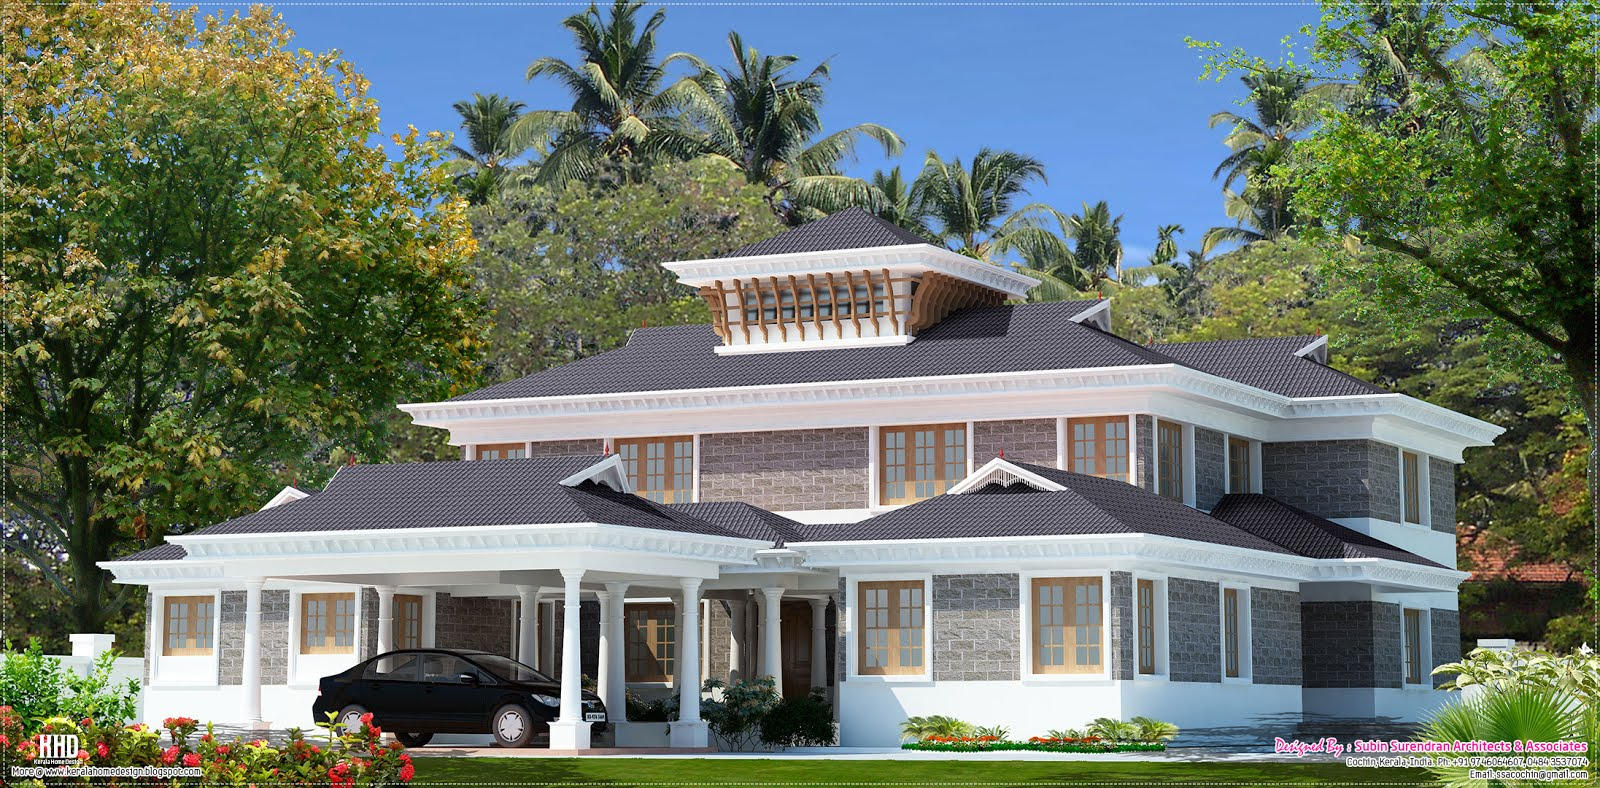 5000 luxury villa design kerala home design and for 5000 sq ft modern house plans